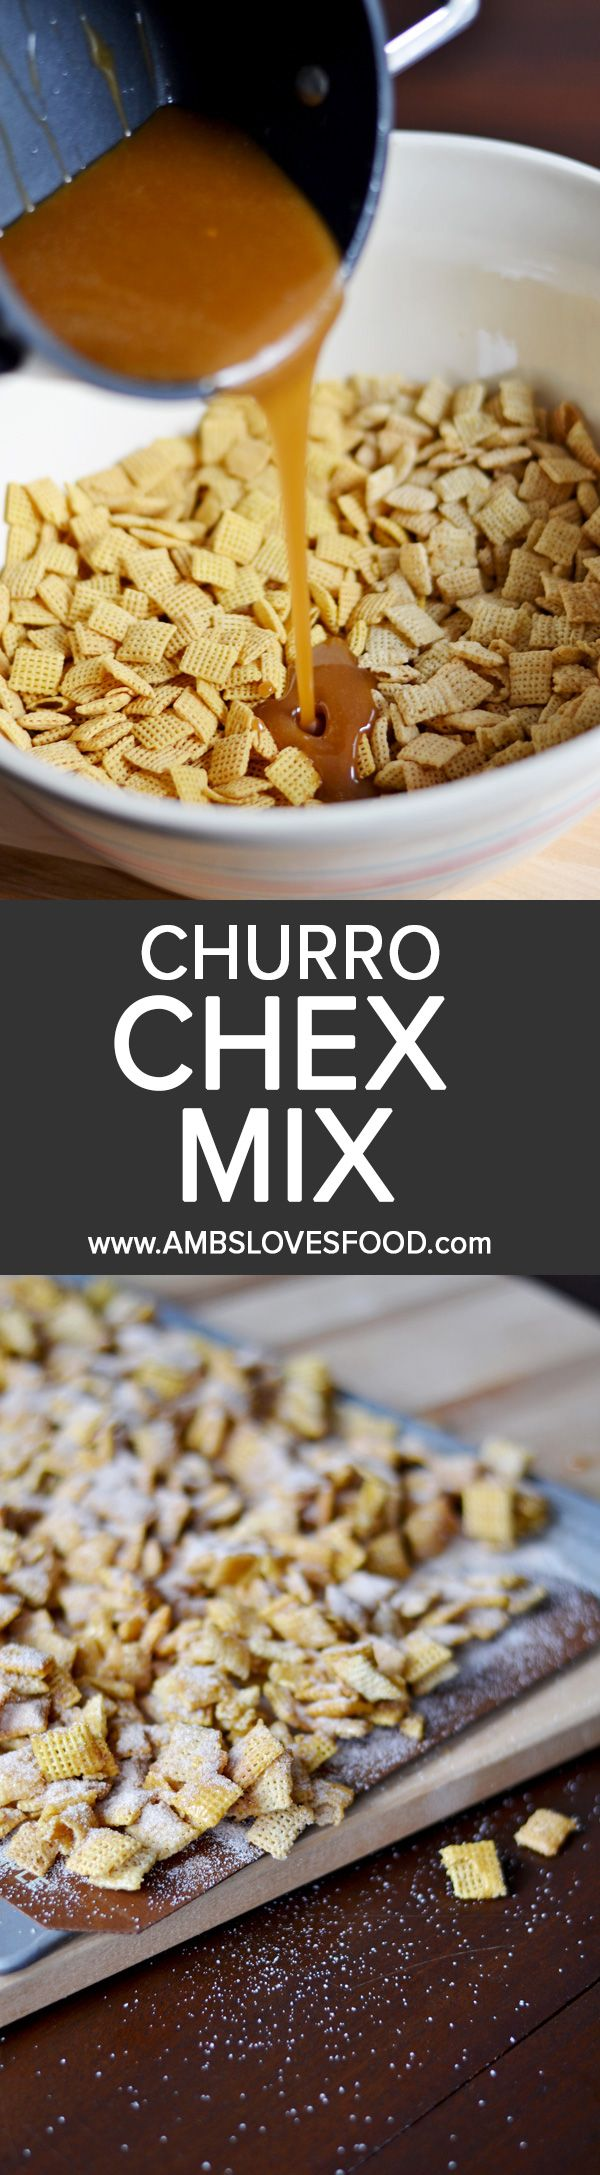 The best of churros without the fried oil, this Churro Chex Mix recipe is sweetened with caramel coating and covered in loads of cinnamon sugar.